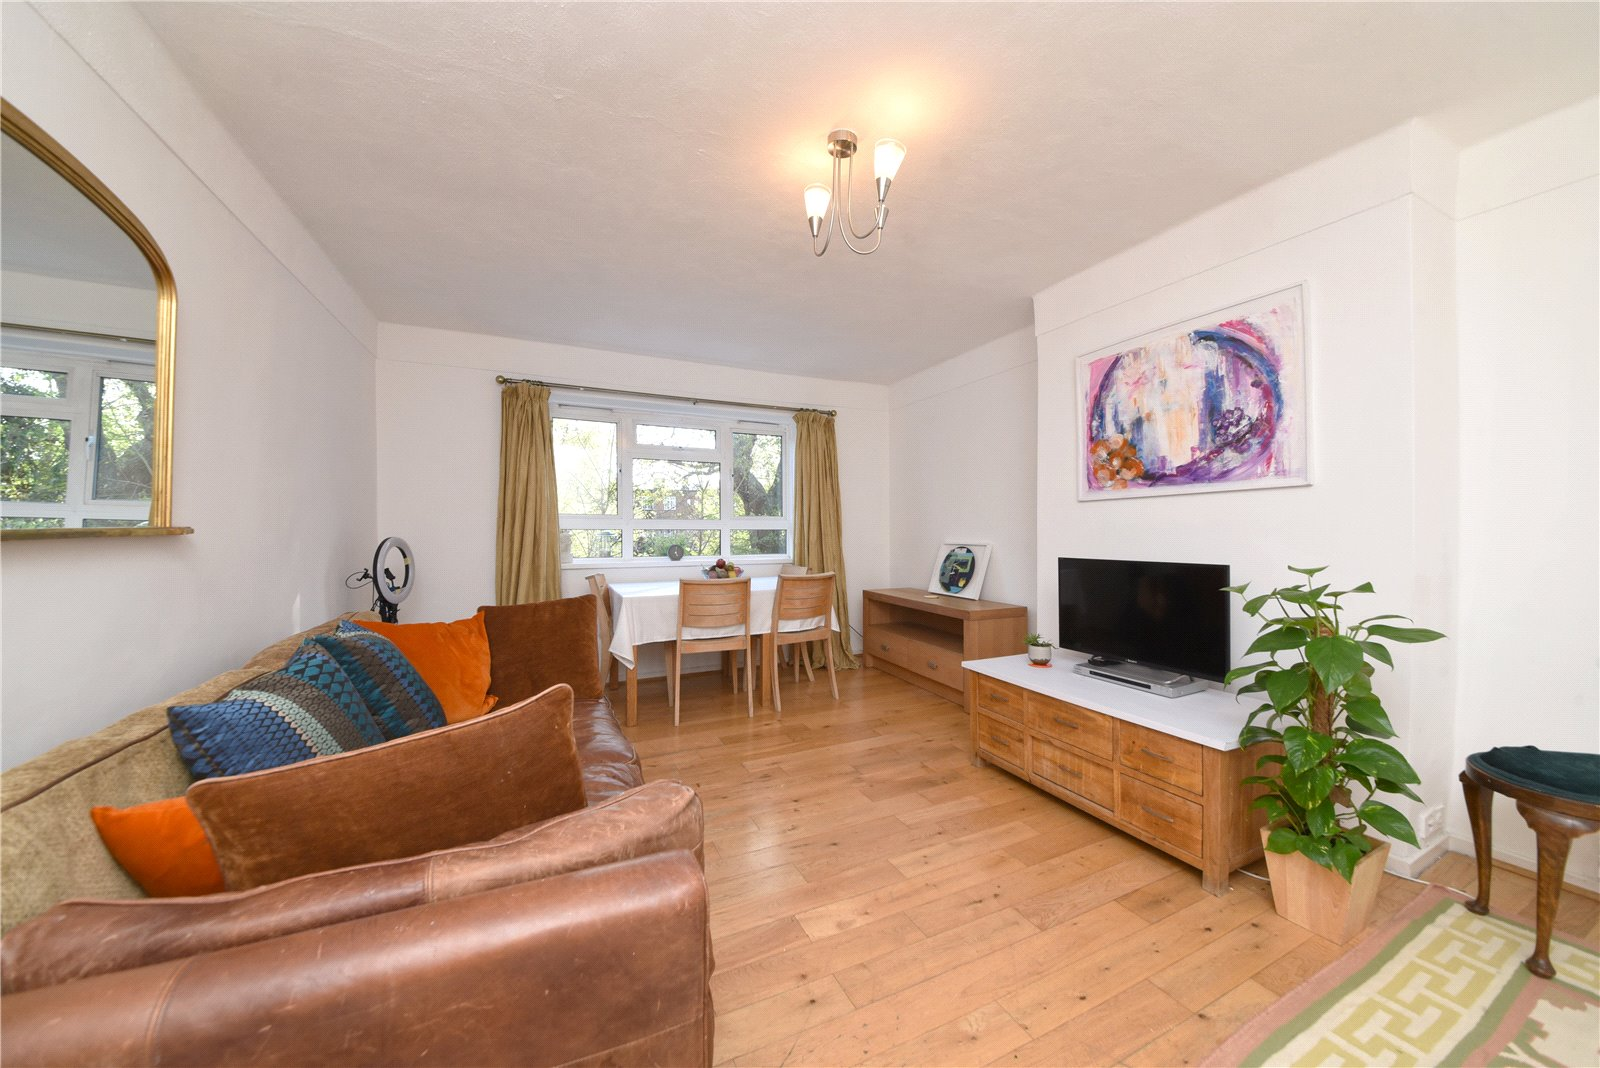 2 bed apartment for sale in Burnbrae Close, Finchley, N12